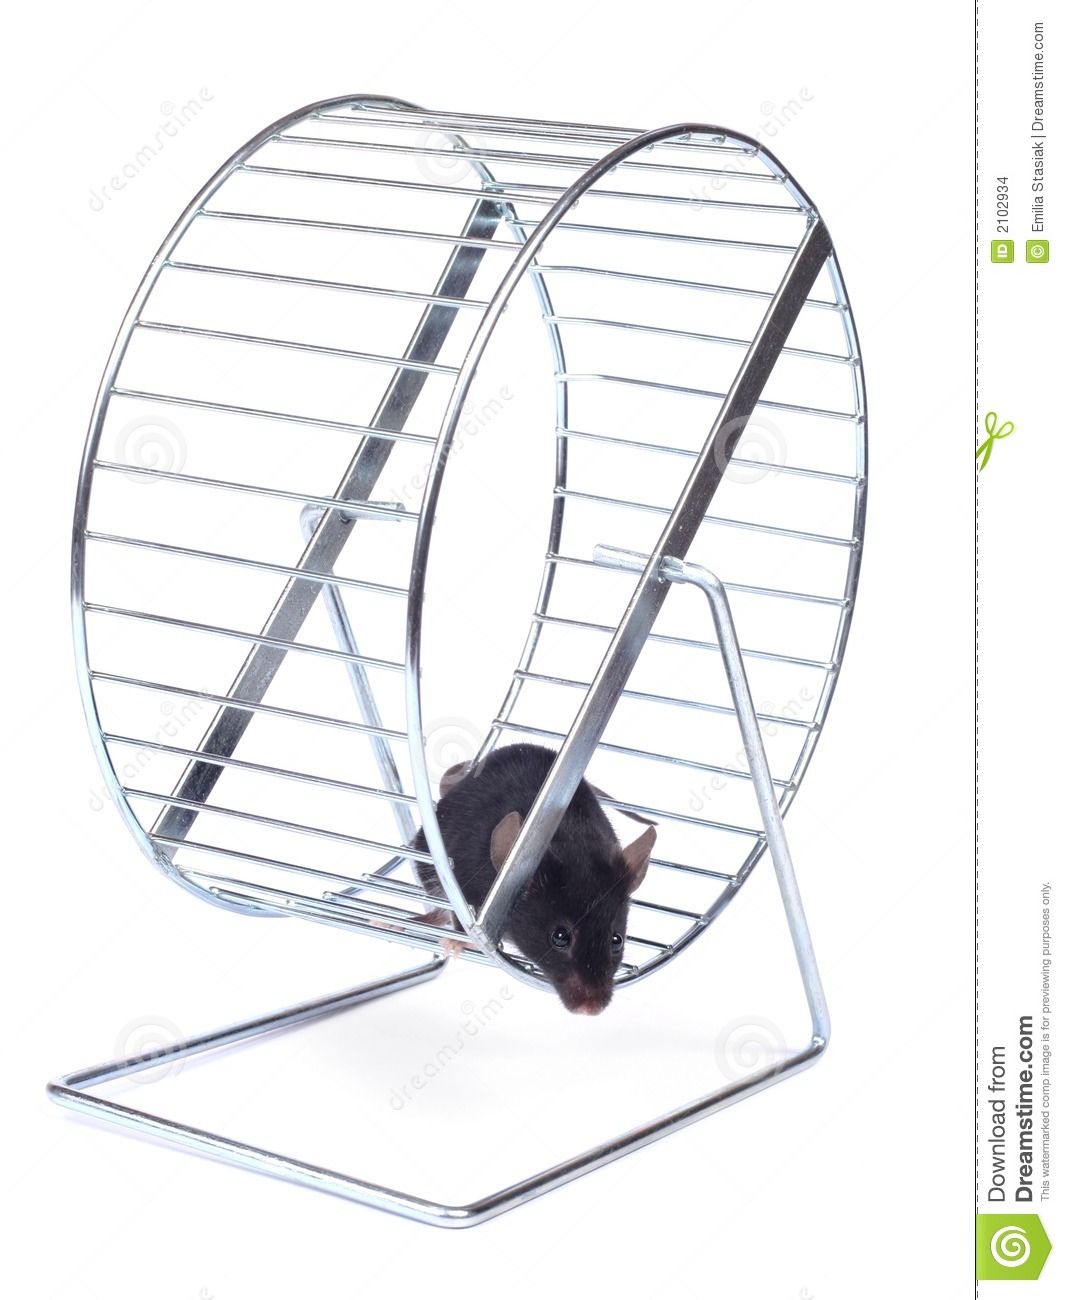 Mouse On An Exercise Wheel Stock Images - Image: 2102934